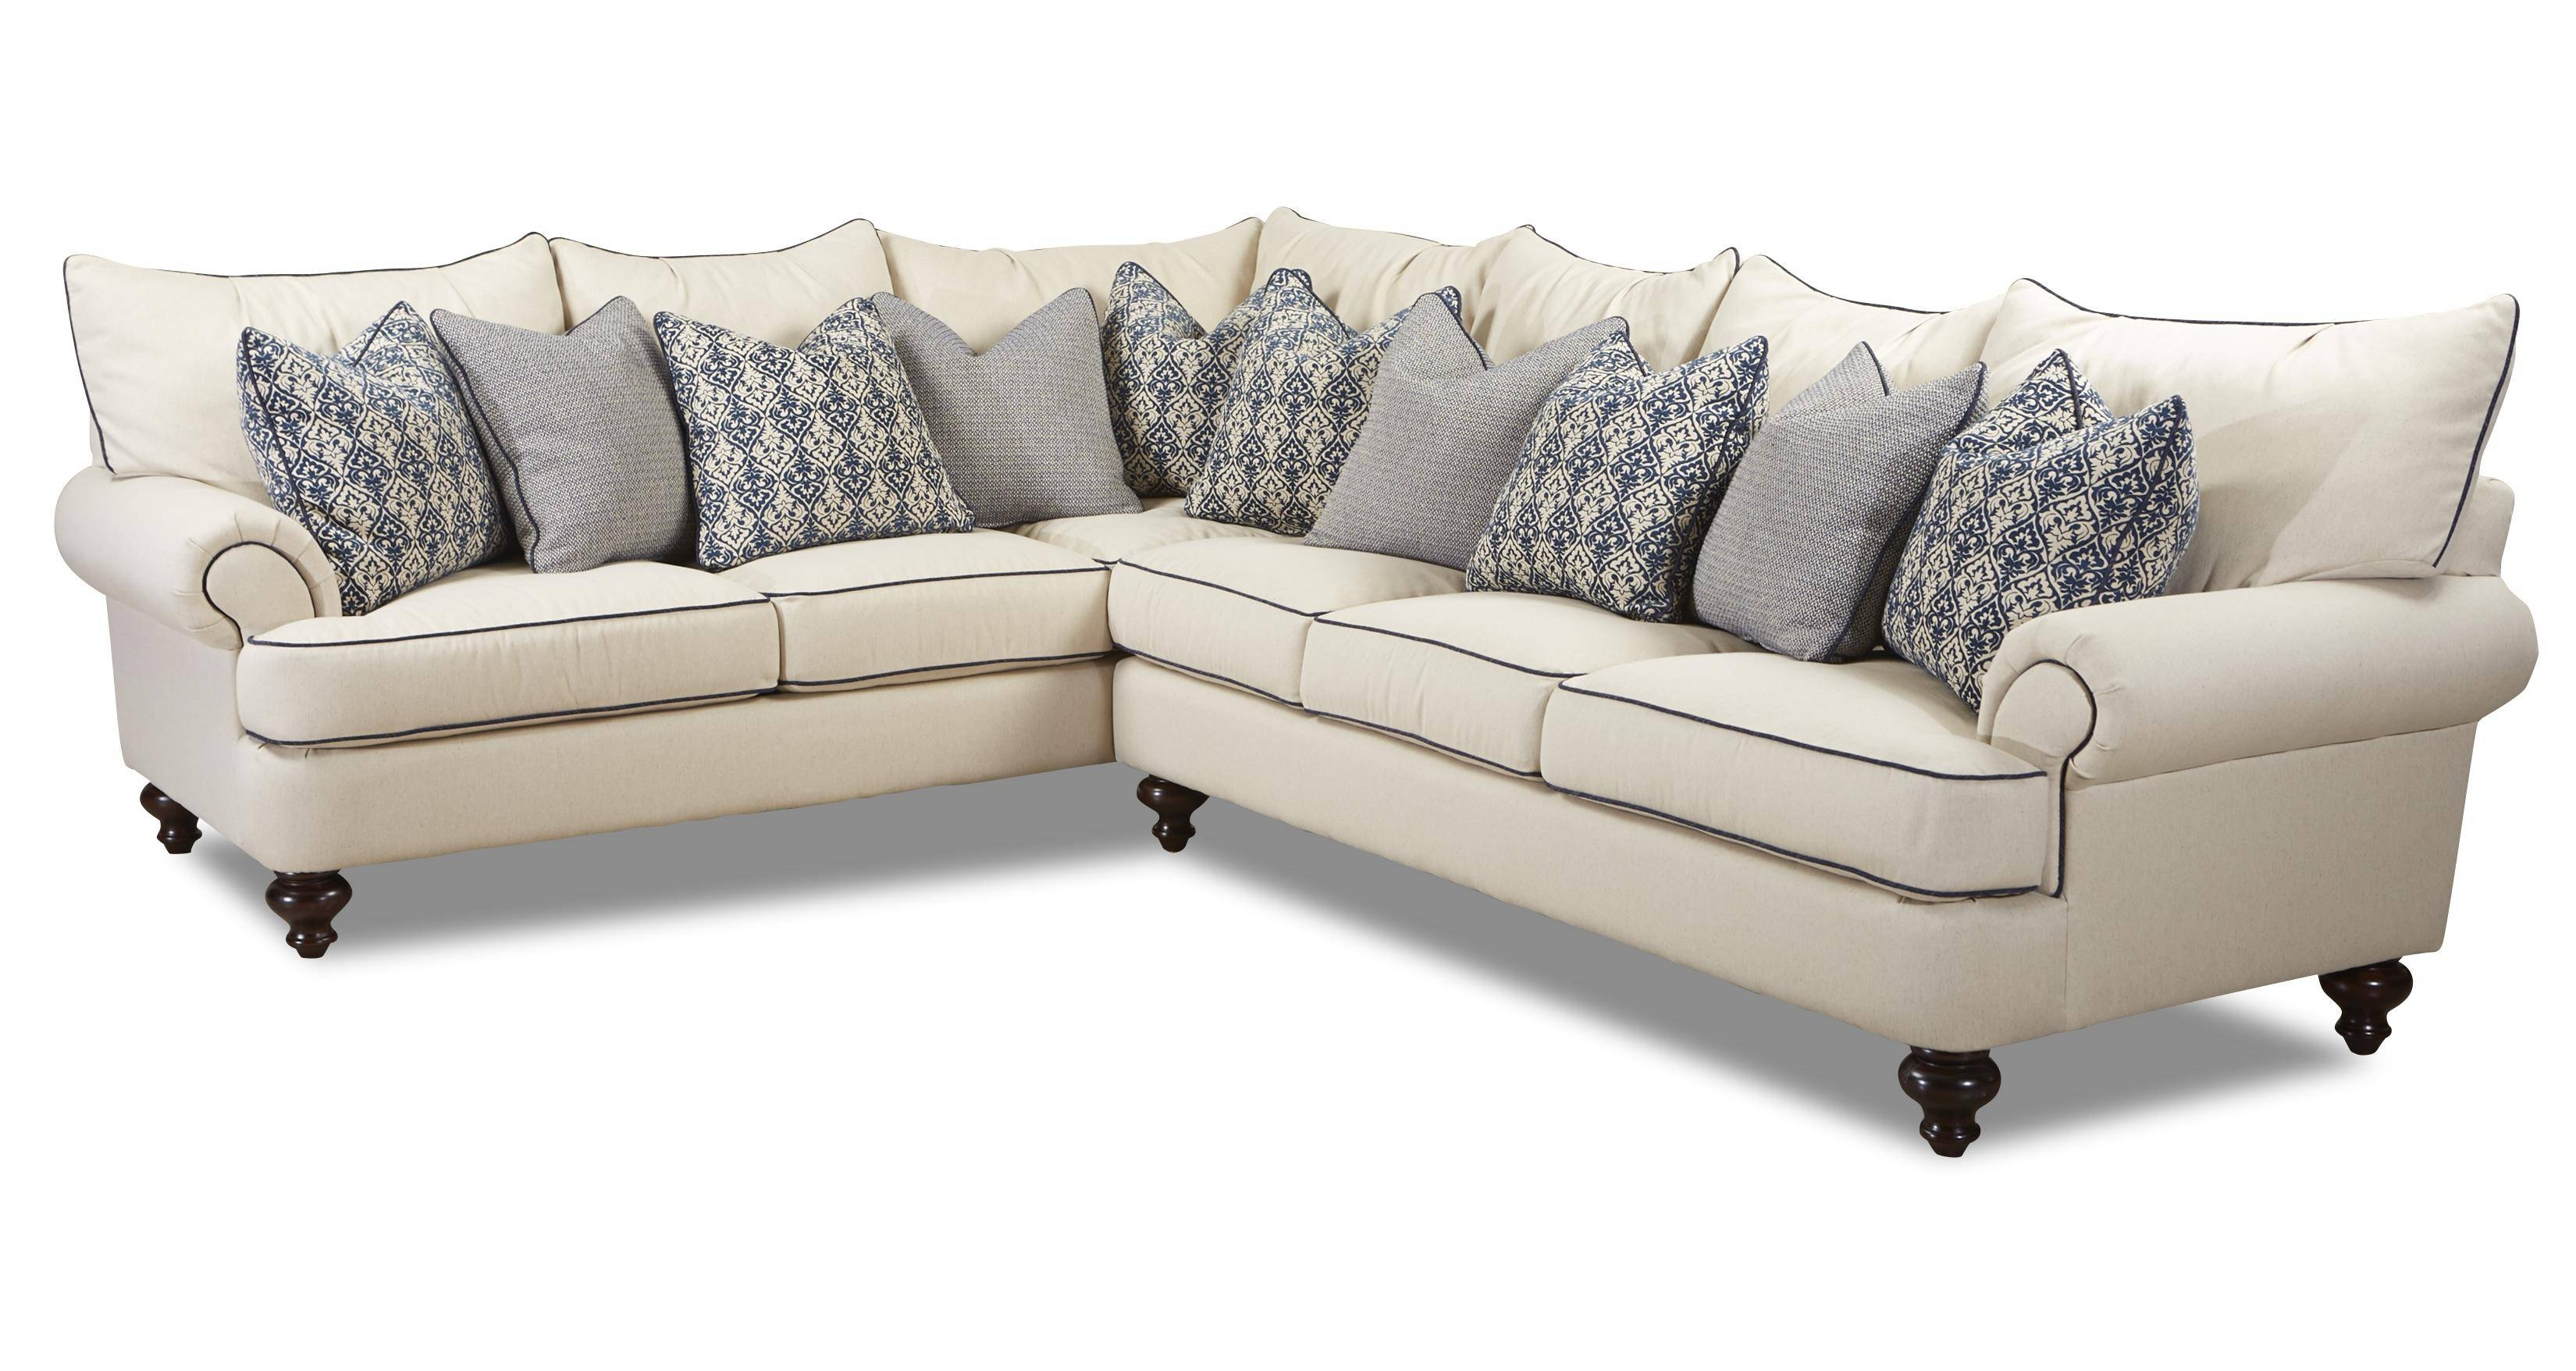 Klaussner Ashworth Shabby Chic Sectional Sofa – Wayside Furniture Intended For Shabby Chic Sectional Sofas Couches (View 11 of 15)